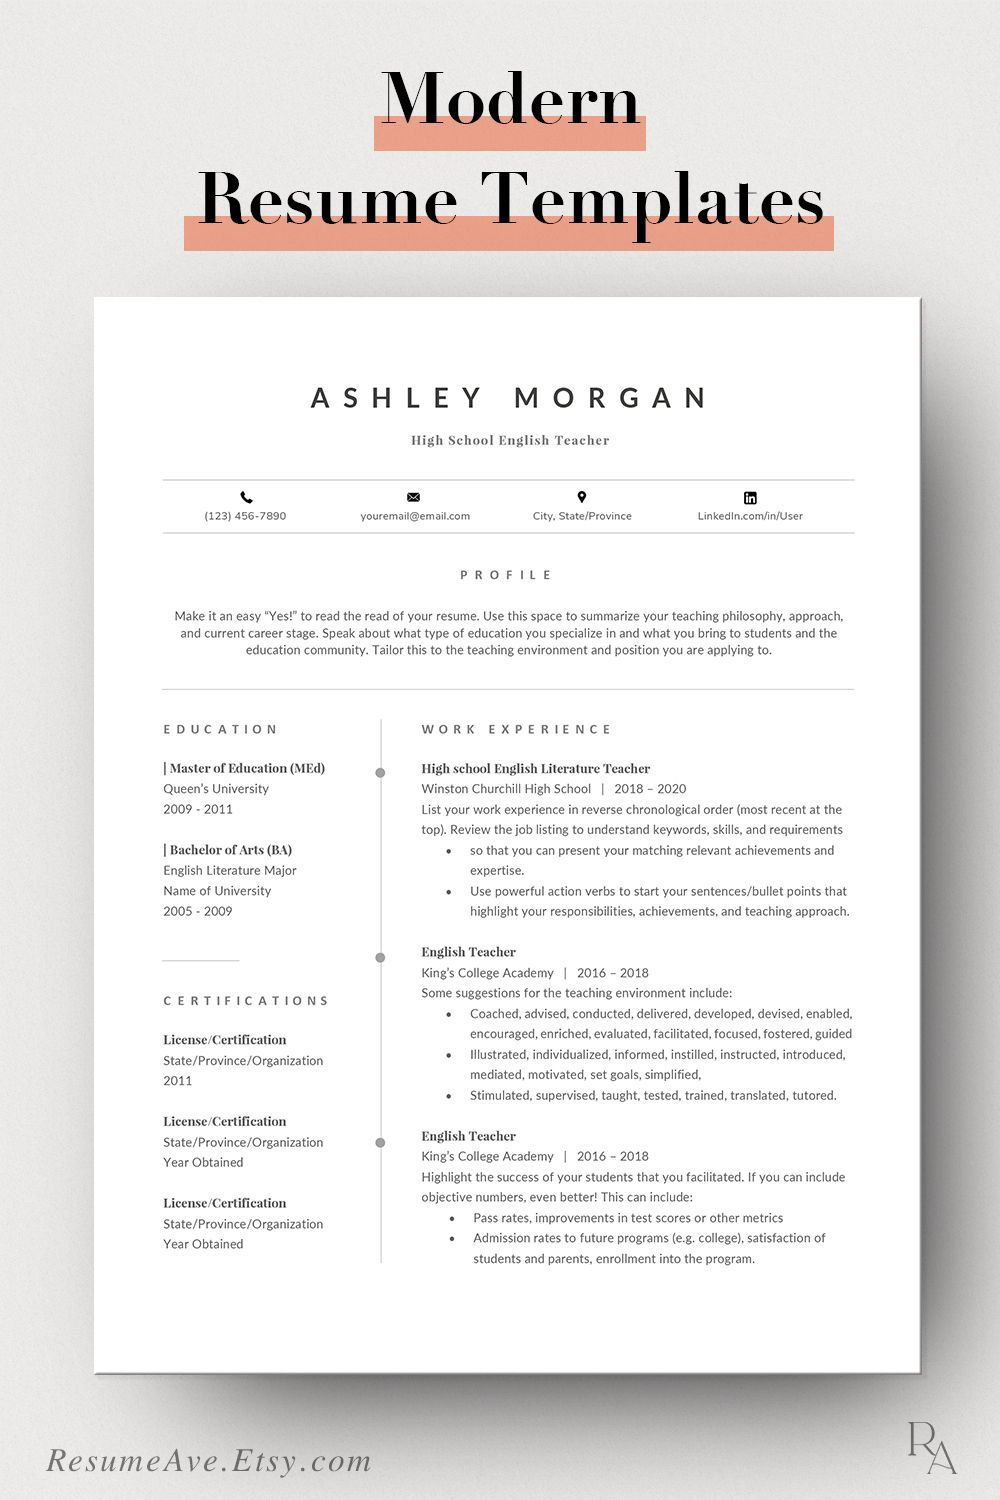 Modern teacher resume template word for instant download